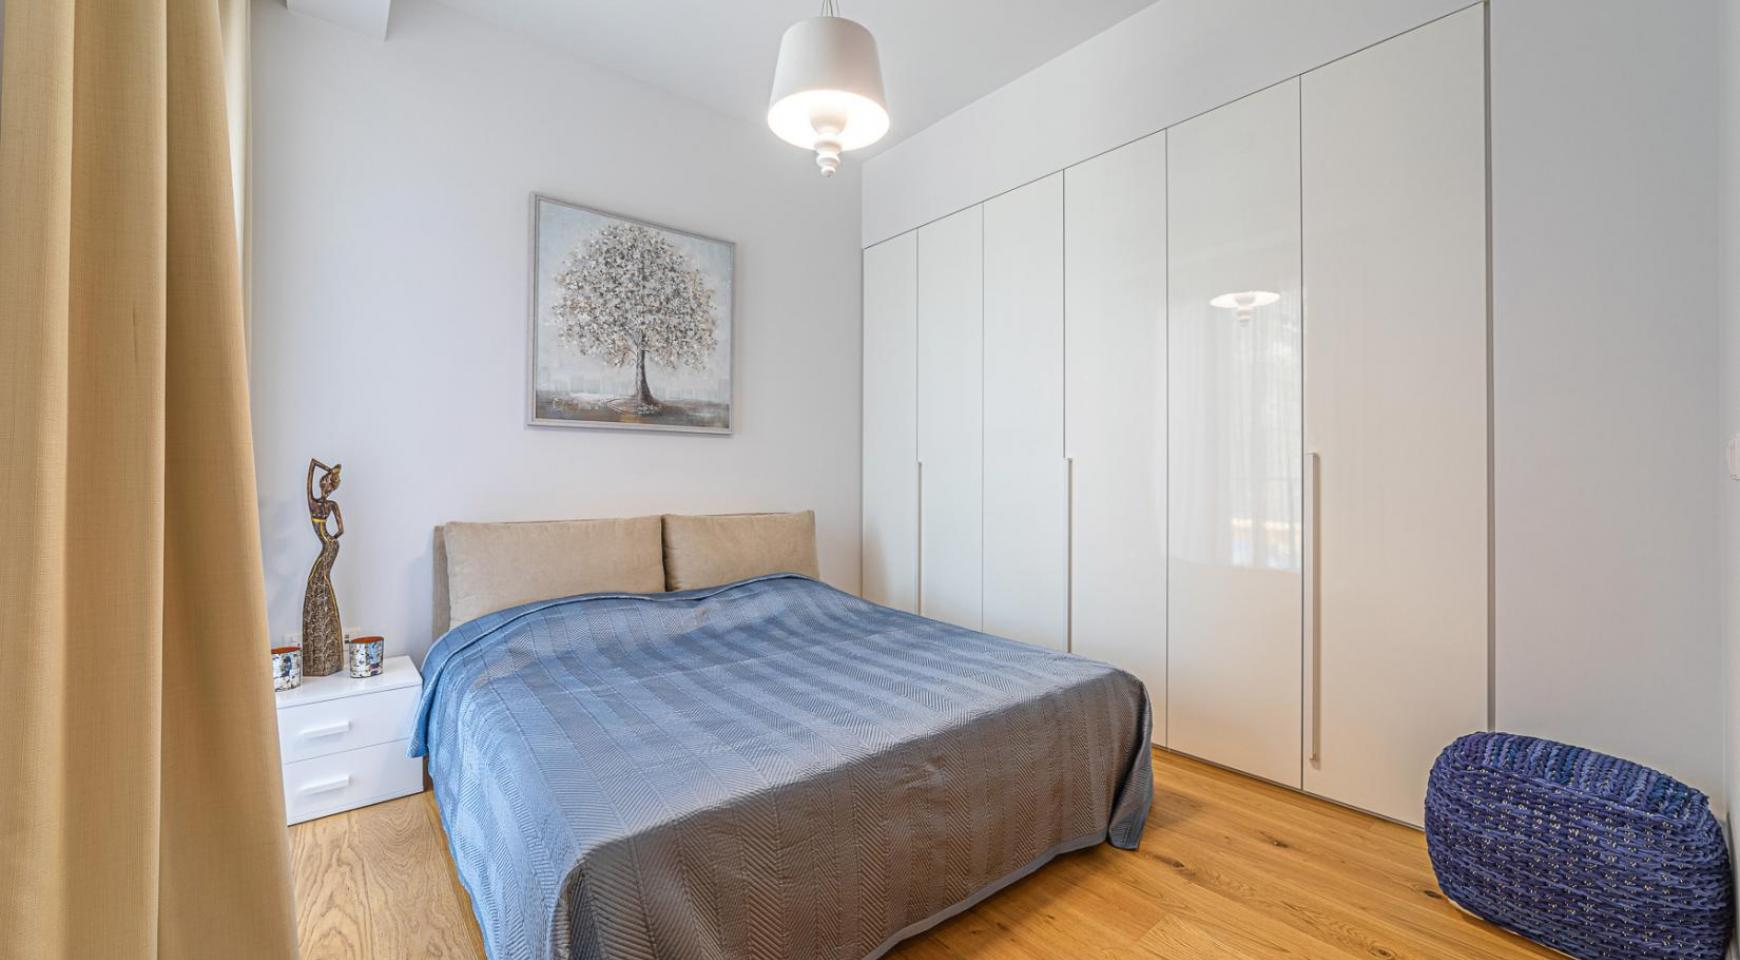 Hortensia Residence, Apt. 103. 3 Bedroom Apartment within a New Complex near the Sea  - 58